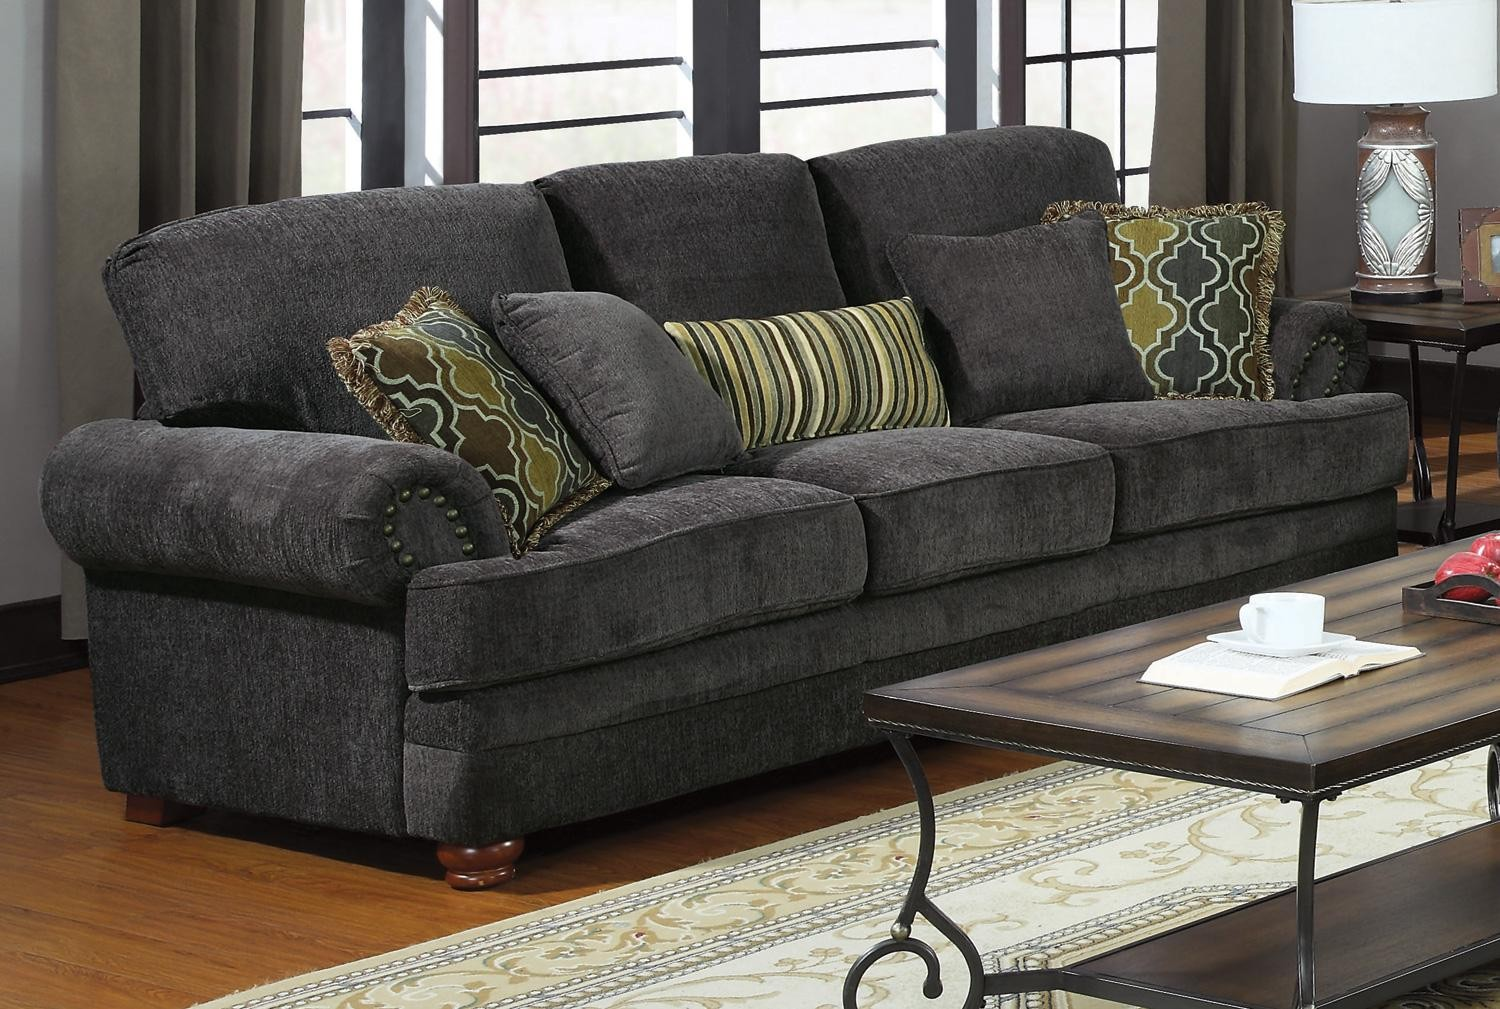 Colton grey sofa from coaster 504401 coleman furniture for Couch 0 finanzierung